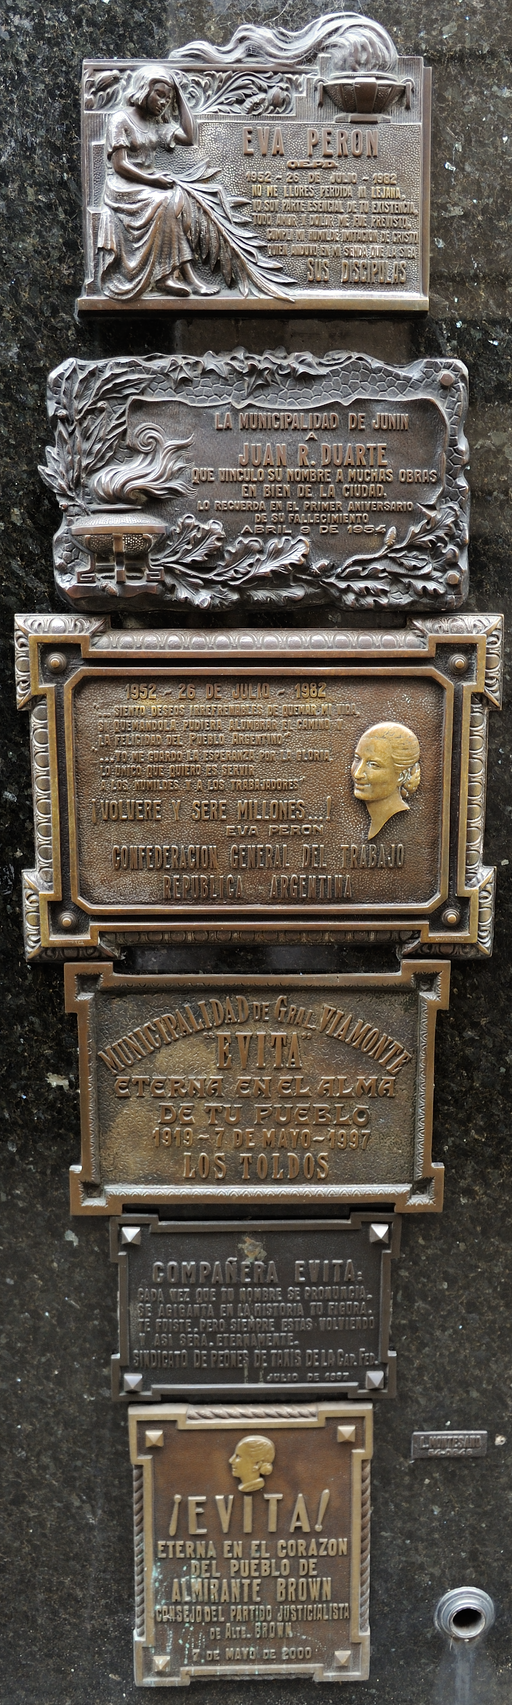 Plaques on Evita's tomb at Cementerio de la Recoleta in Buenos Aires, Argentina (15755074219)